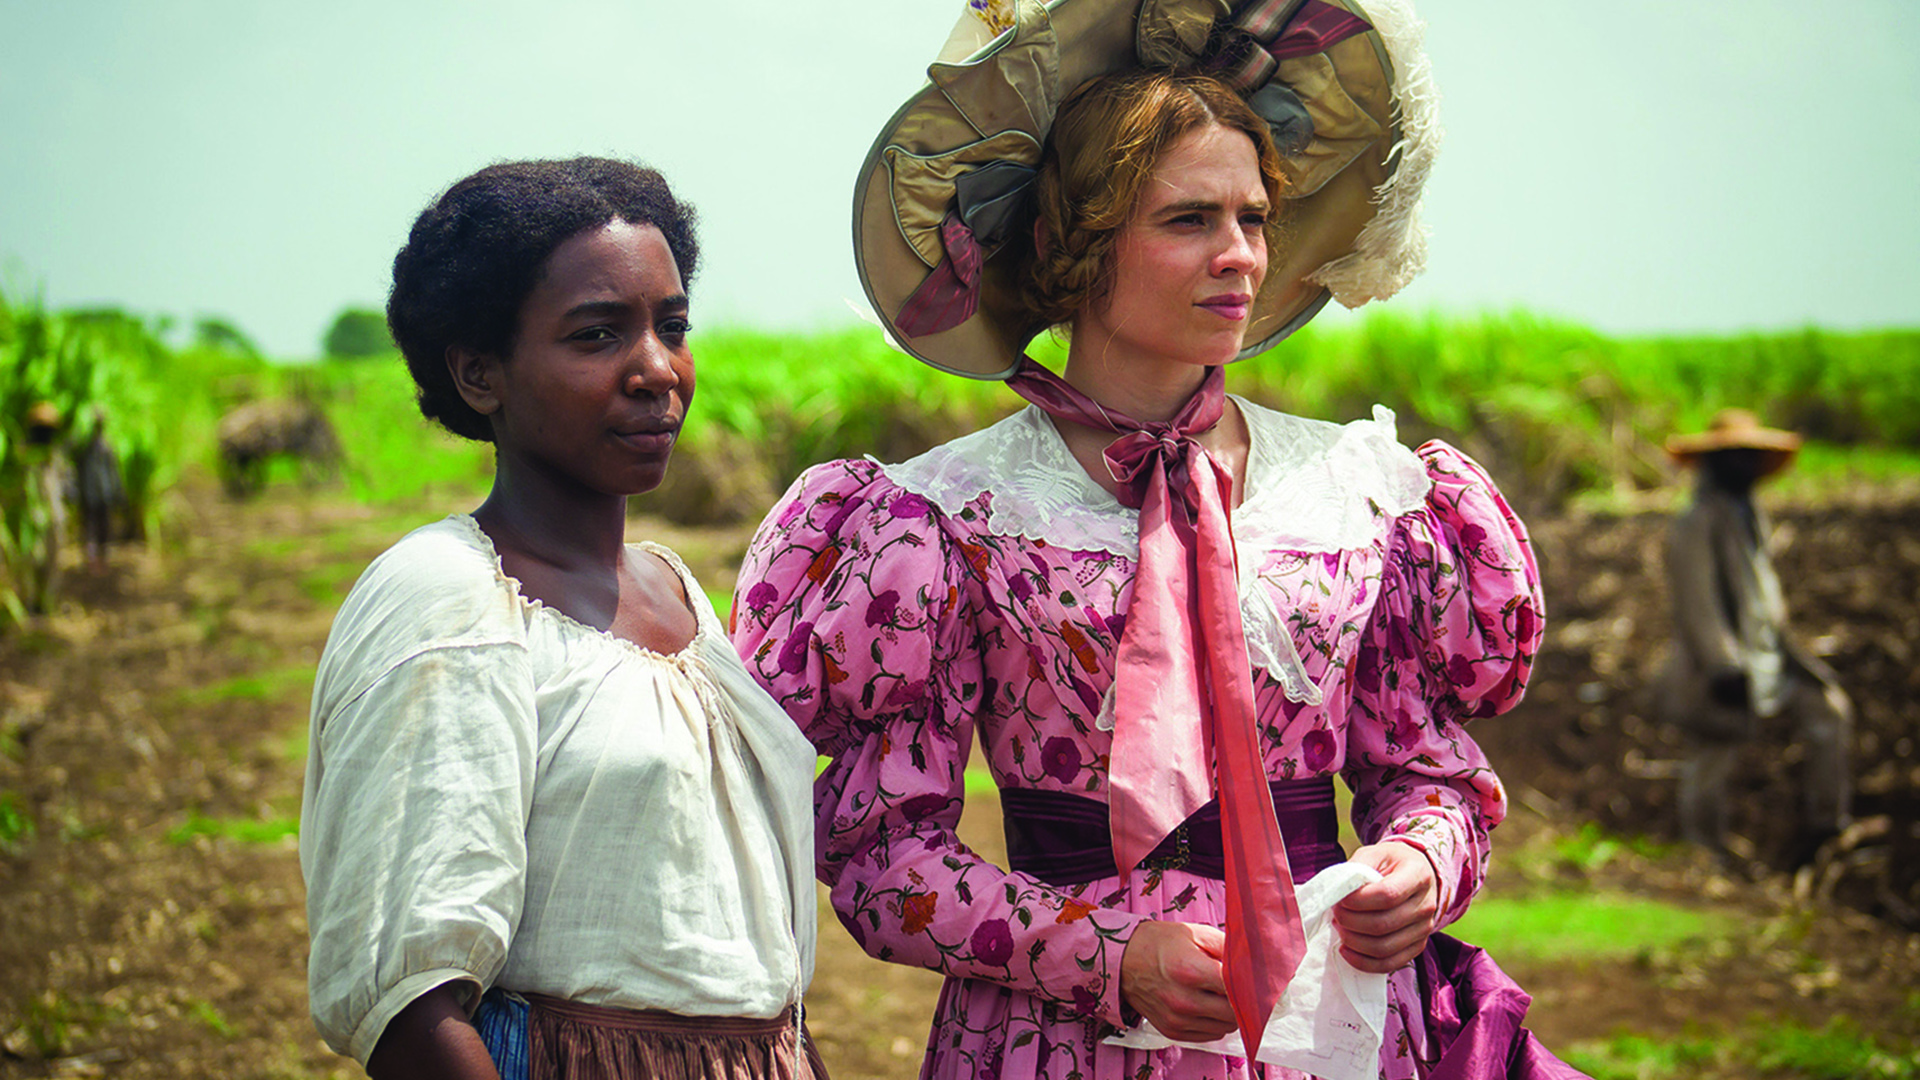 A black slave stands next to a white woman. Both look off screen into a field.